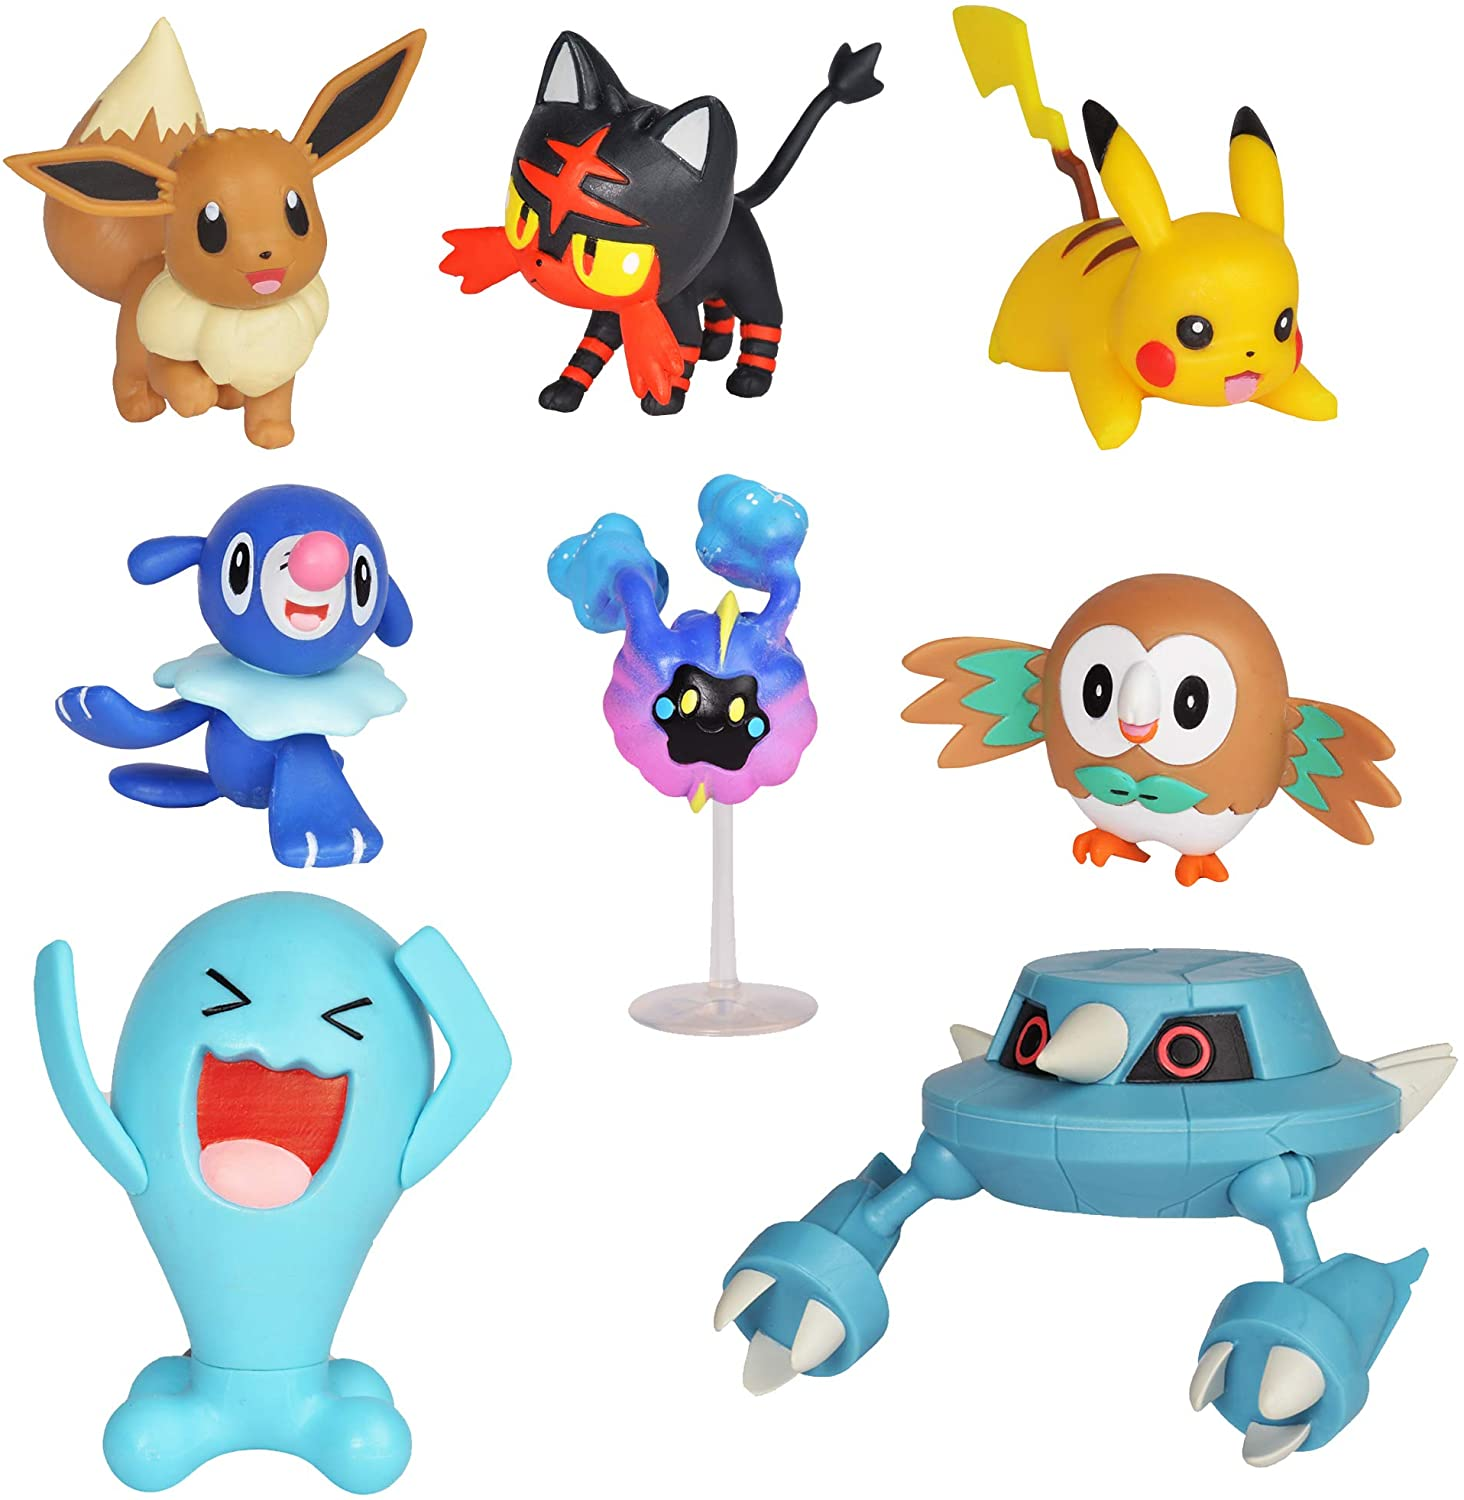 Top 16 Best Pokemon Toys (2020 Reviews & Buying Guide) 12